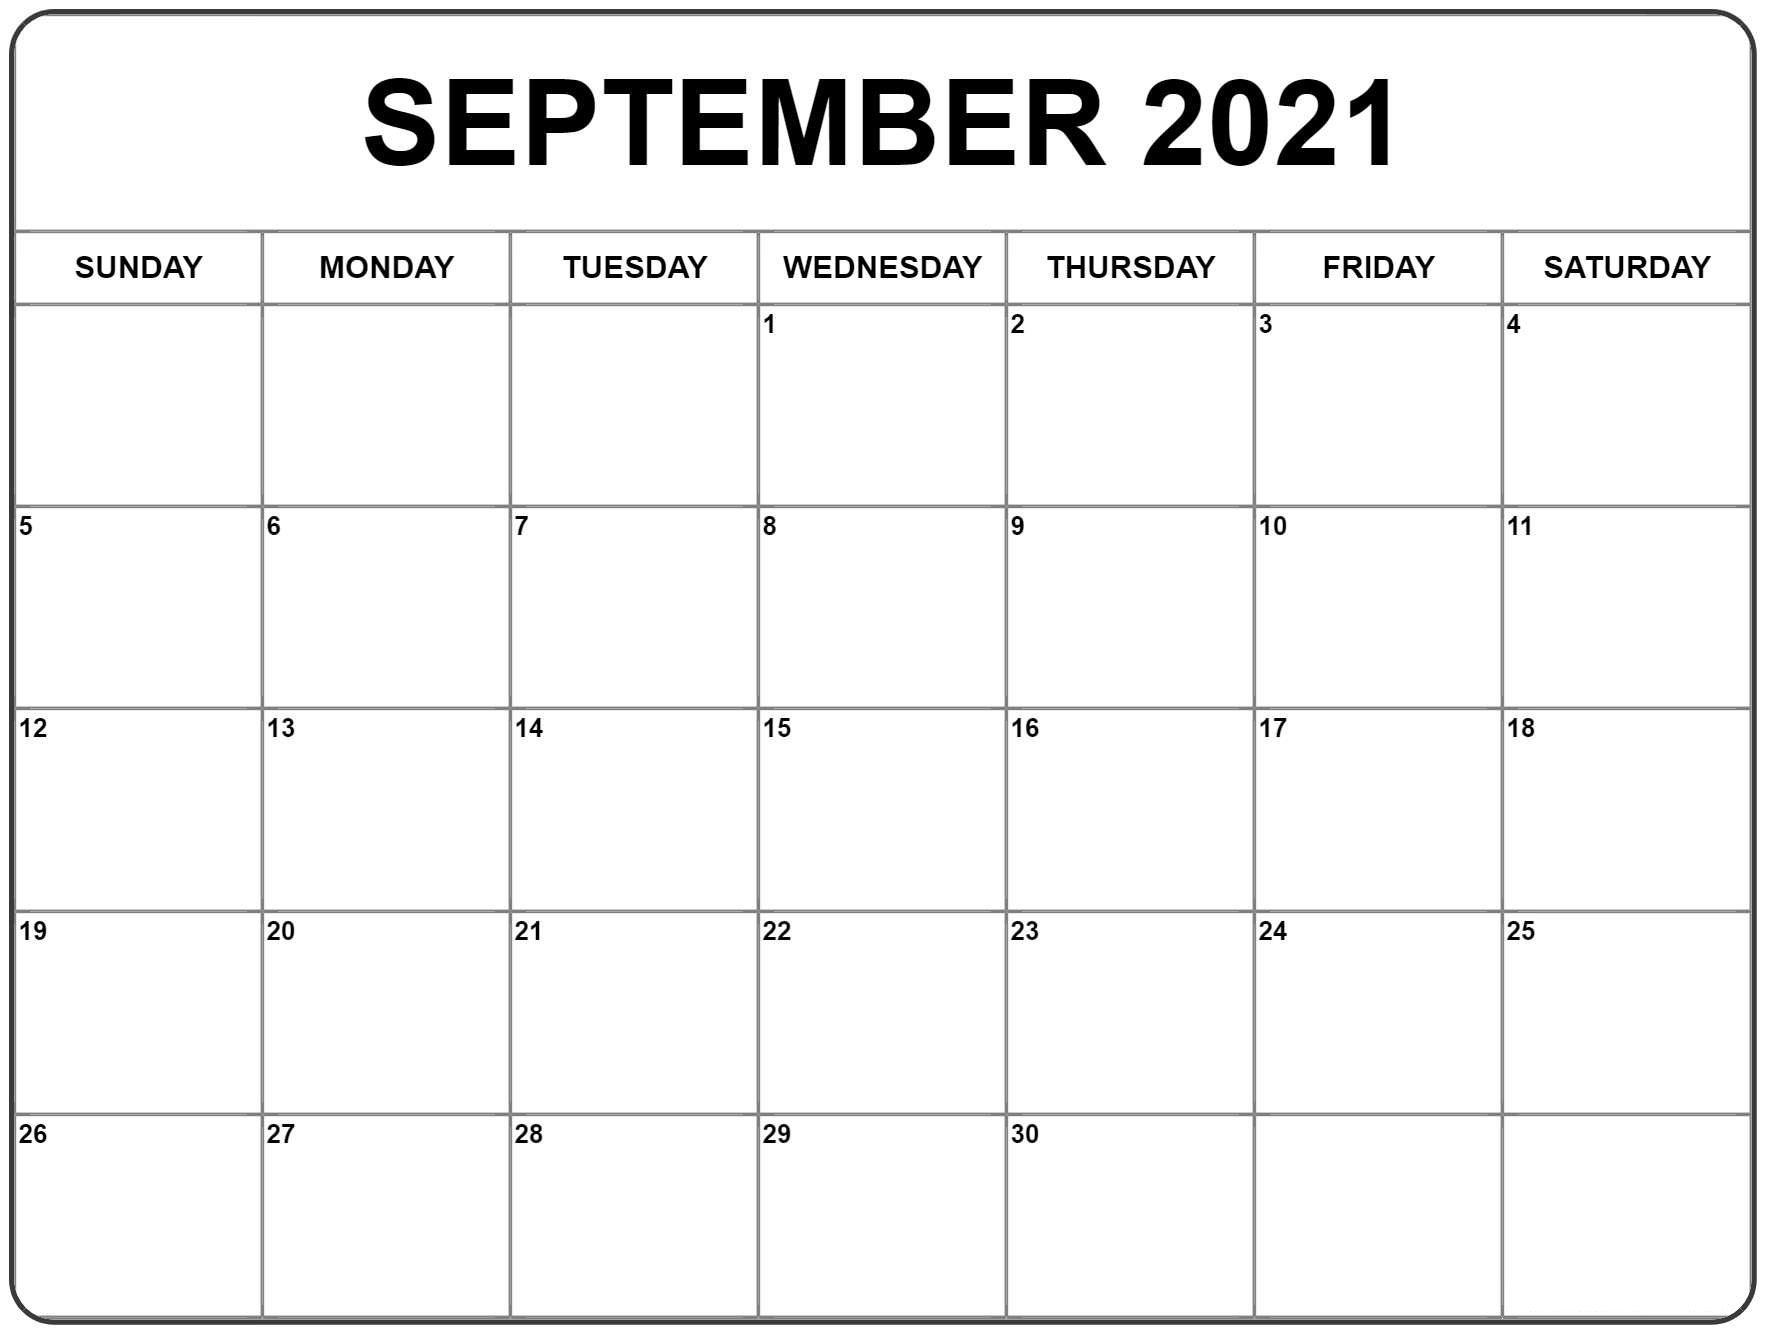 September 2021 Calendar | Blank Monthly Calendar Template